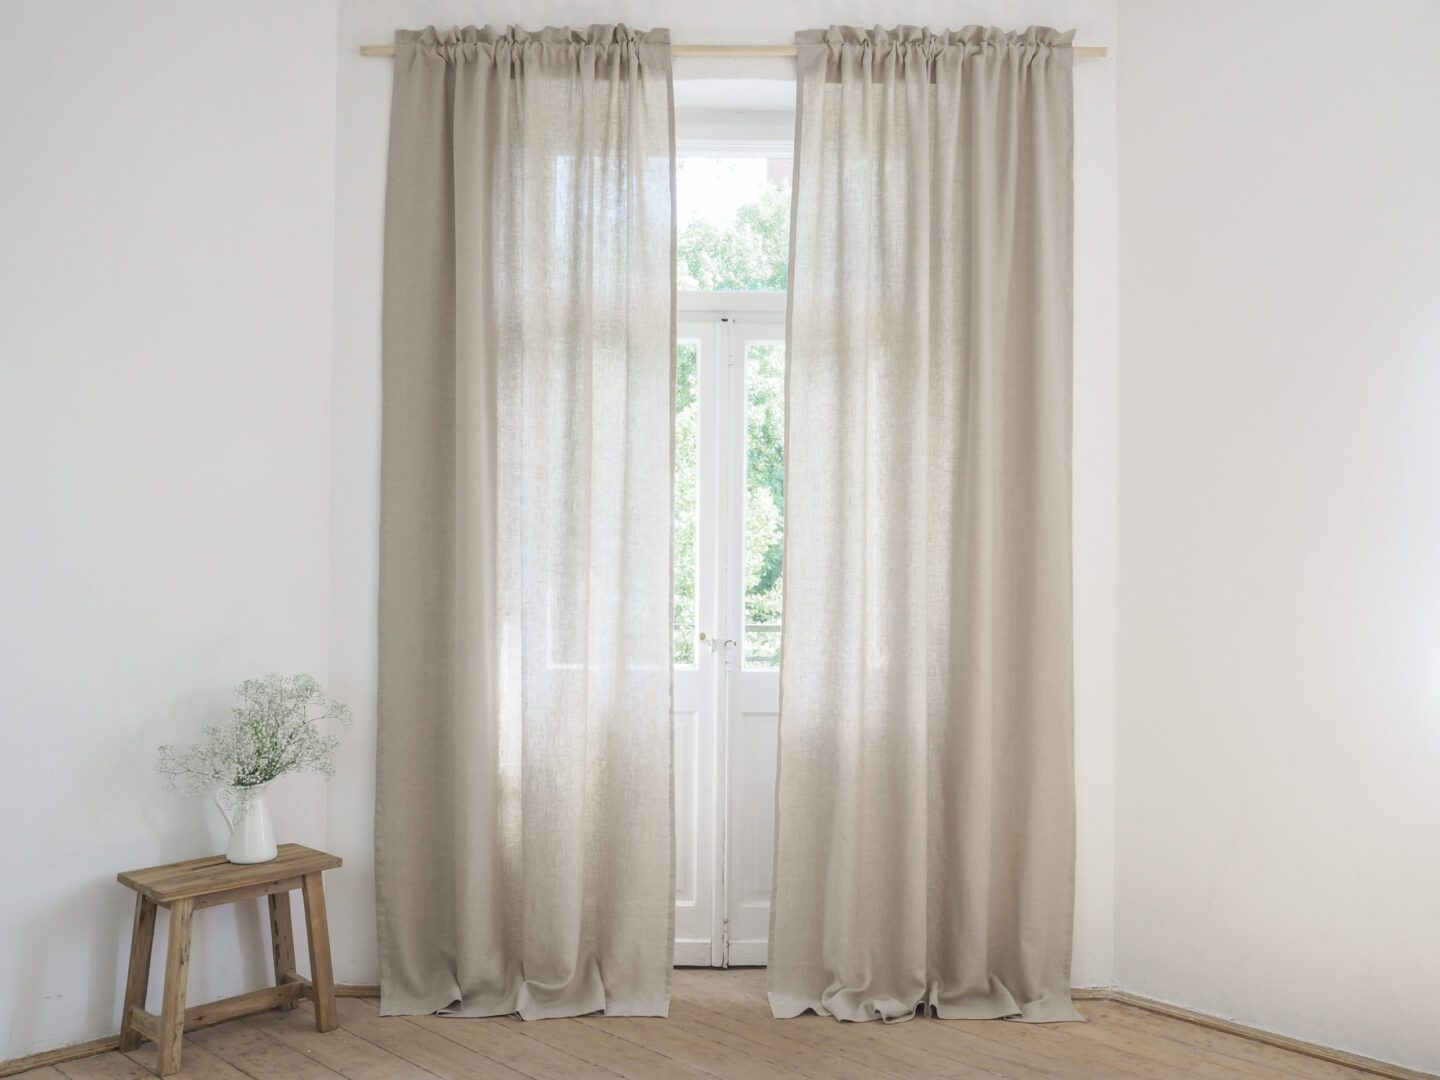 Linen Curtain Panels With Rod Pocket And Header 100 Stonewashed Linen